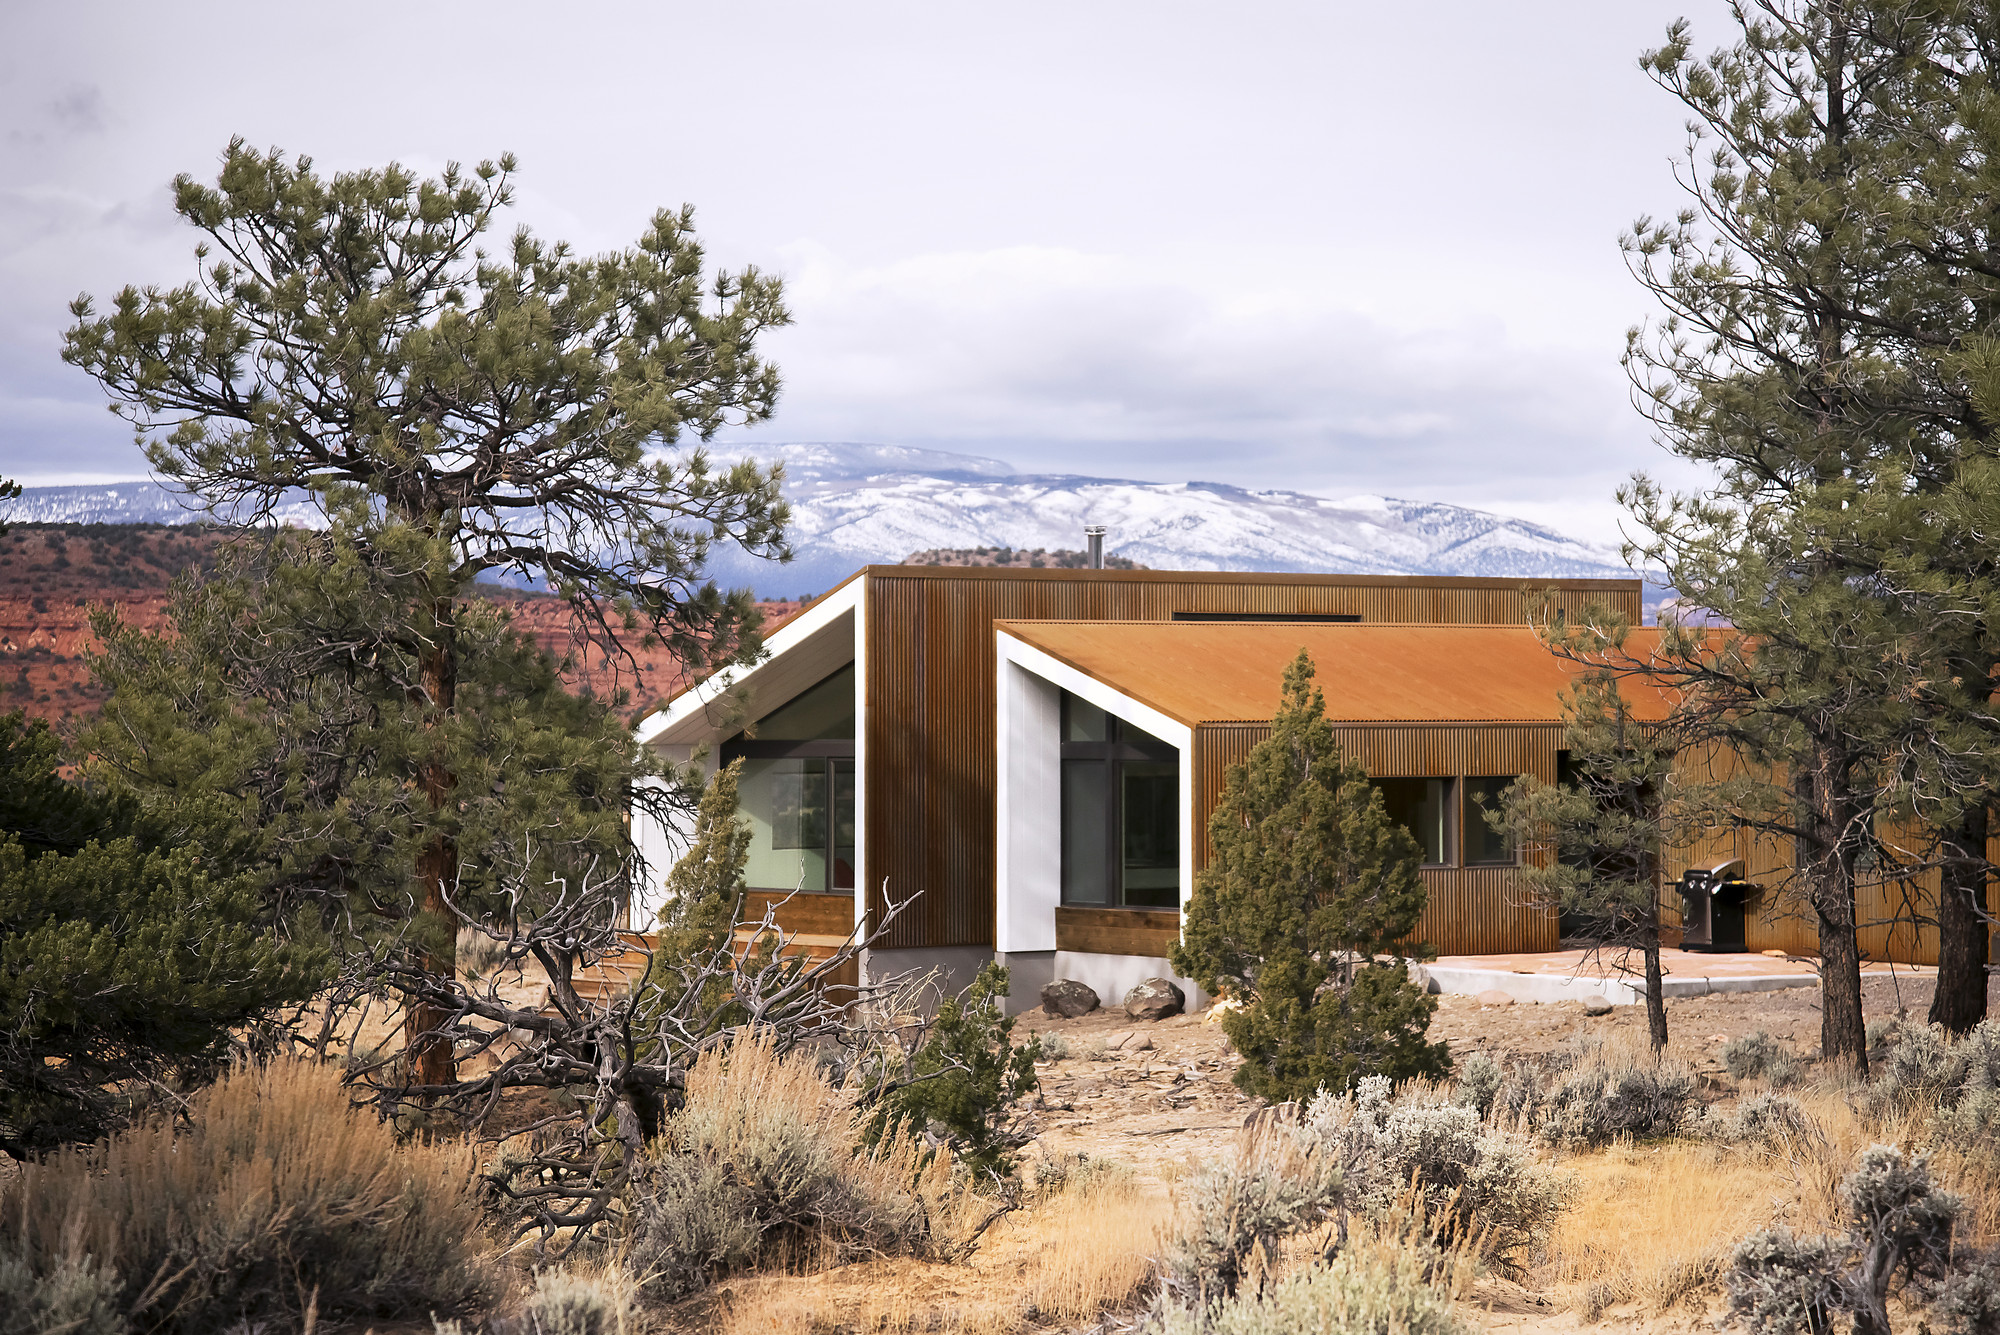 Capitol Reef Desert Dwelling   / Imbue Design, Courtesy of Imbue Design